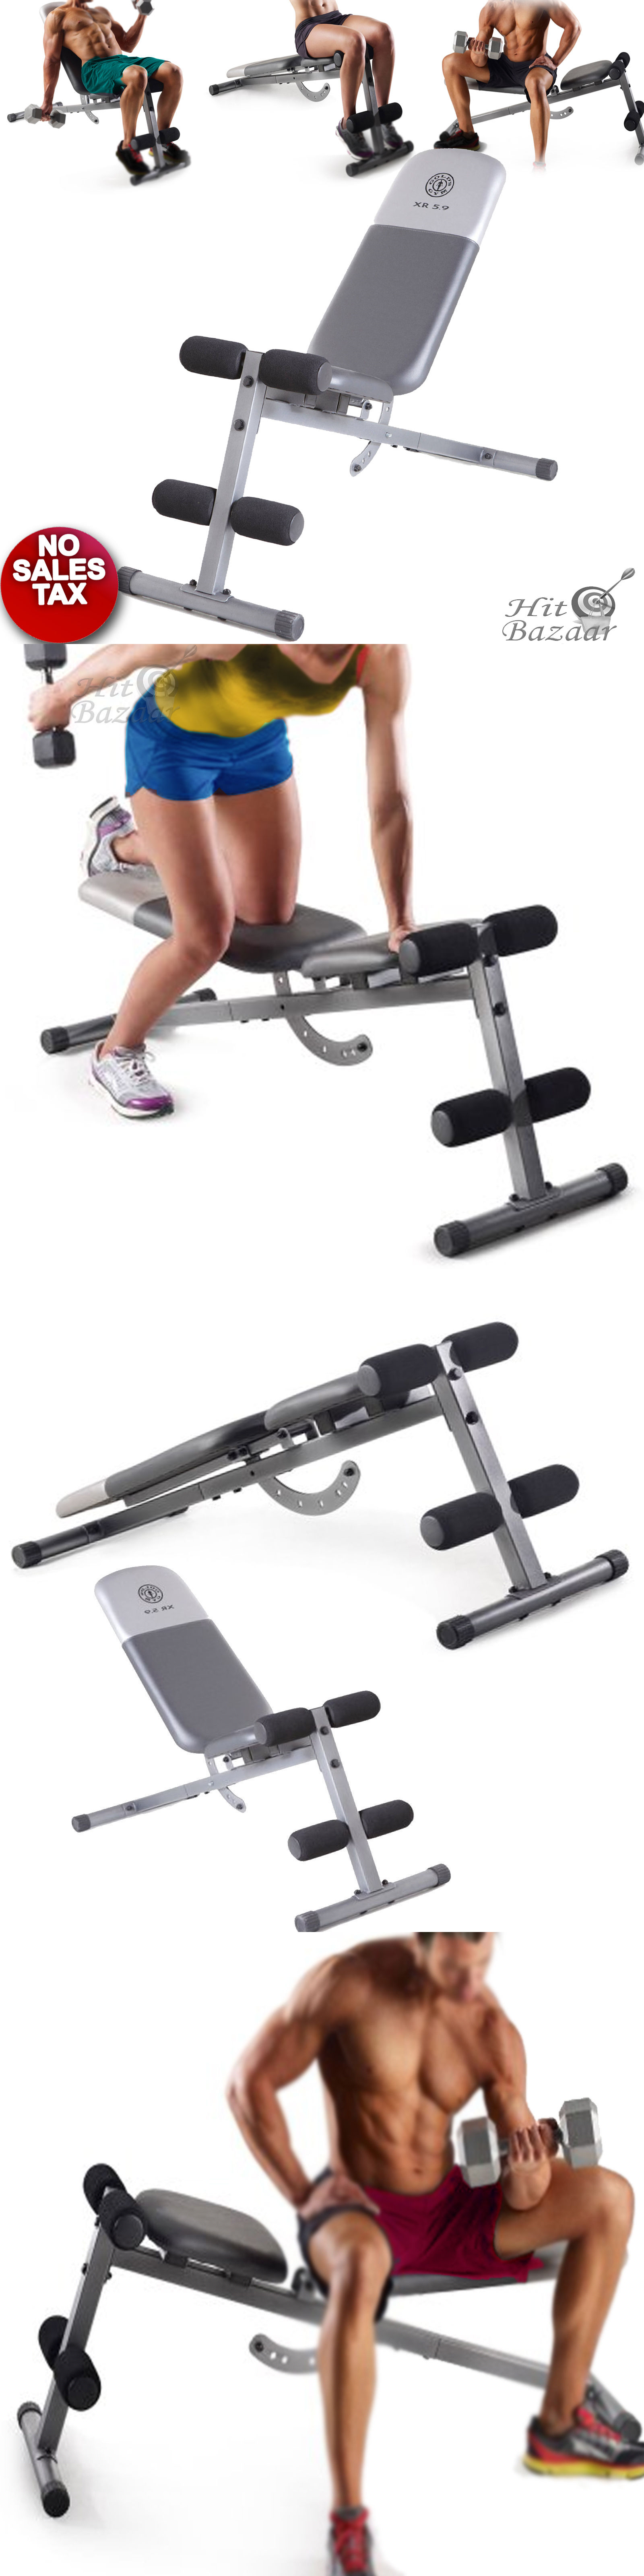 Weight Bench Incline Decline Flat Xmark Fid Free Weights Gfid71 Buy D8 Fitness Store